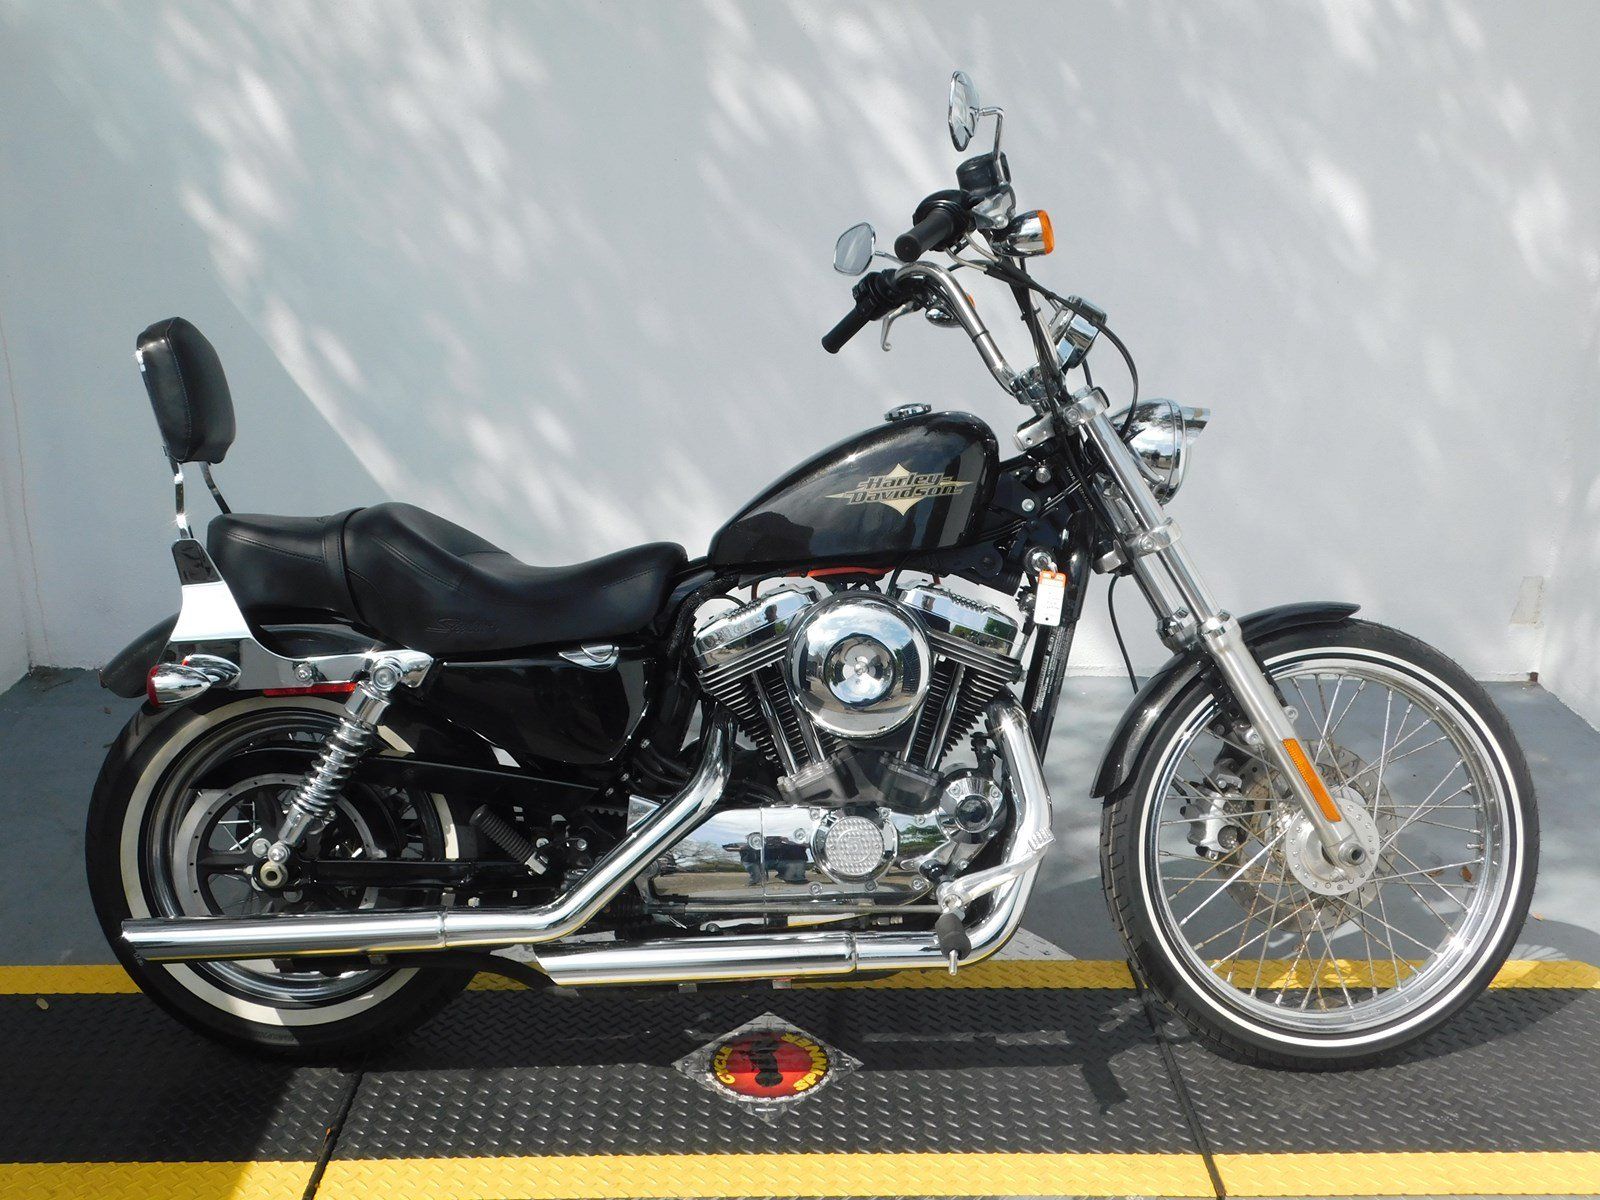 Pre-Owned 2015 Harley-Davidson Sportster Seventy-Two XL1200V